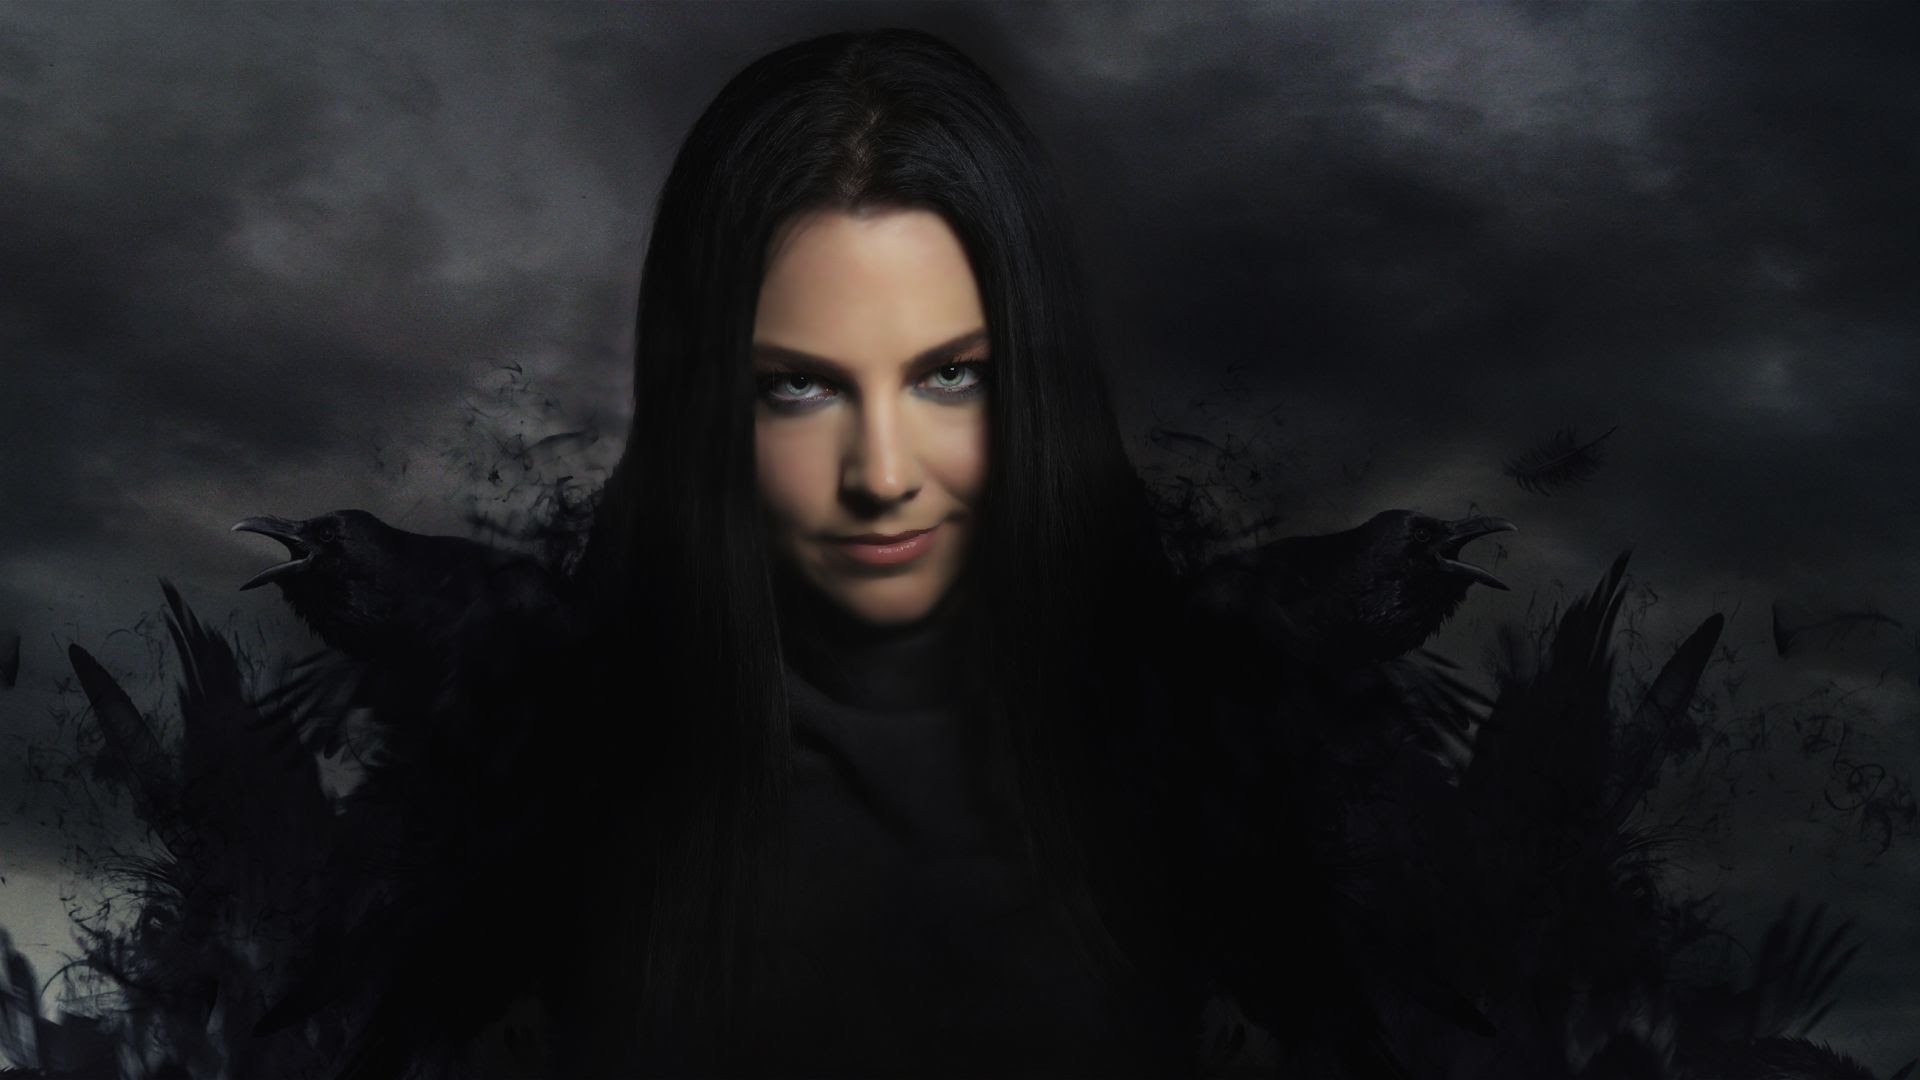 Amy Lee Hd Wallpaper 61 Images Images, Photos, Reviews